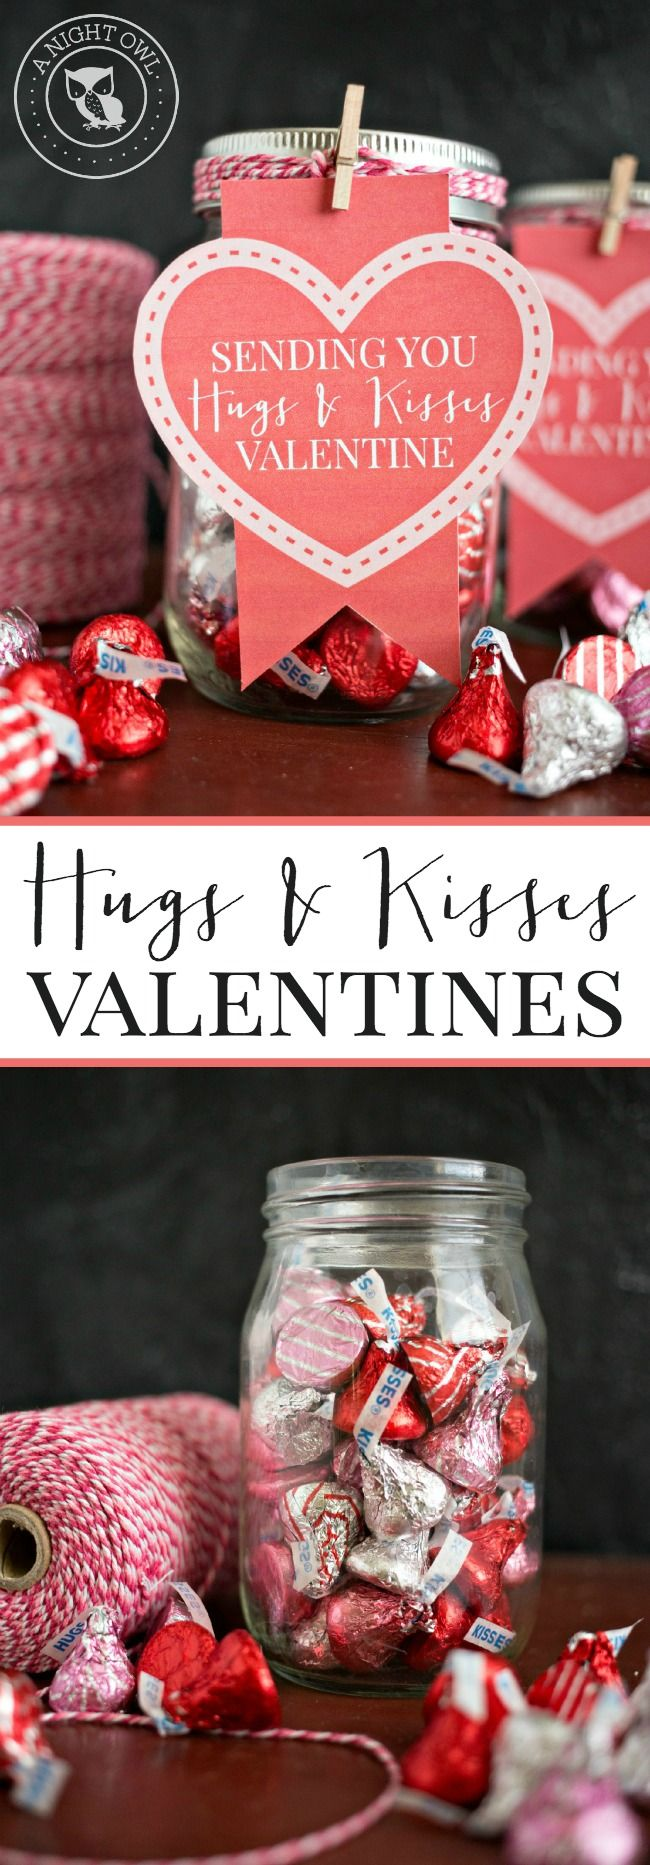 Hugs and Kisses Mason Jar Valentines - download the FREE printable and put together these adorable gifts in just minutes!